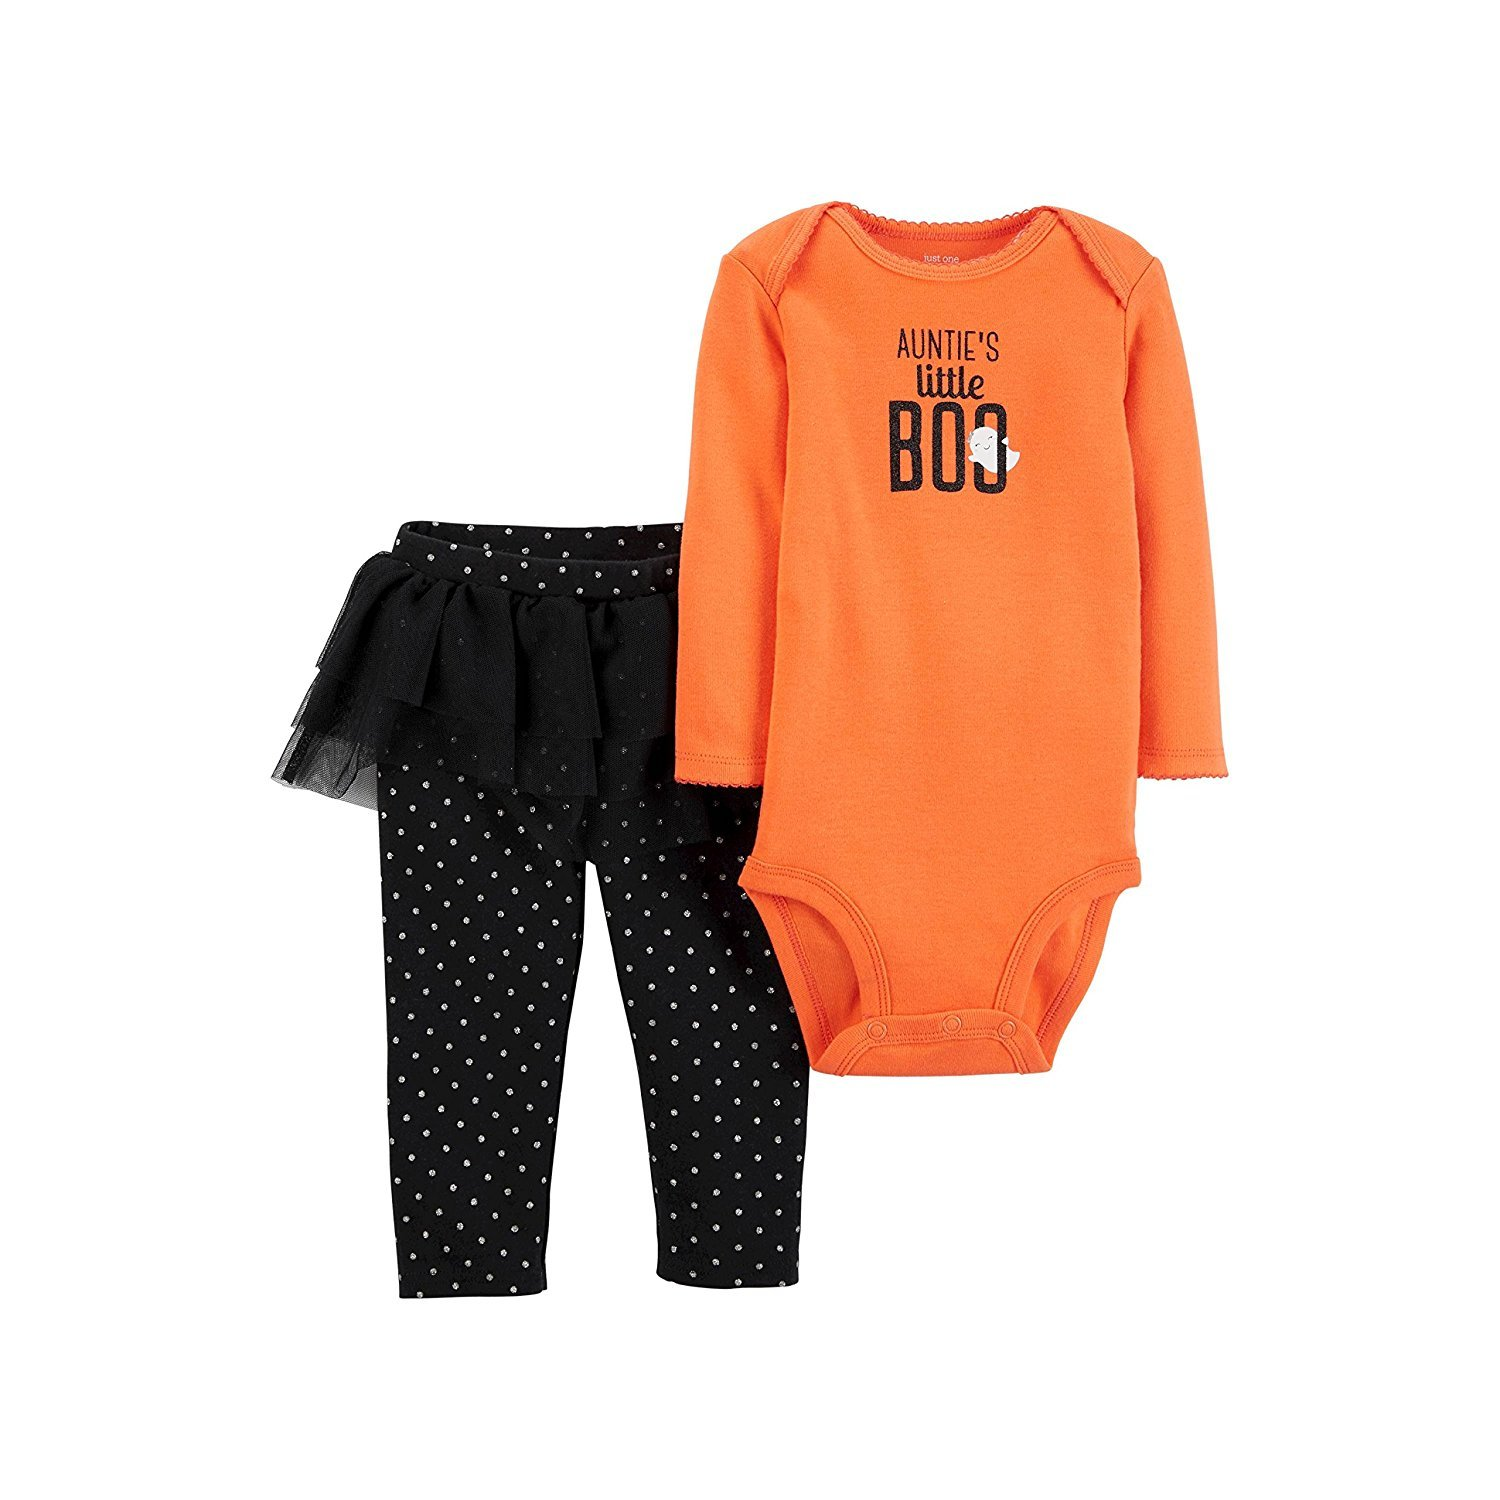 8cae1a397d01 Amazon.com  Carters Baby Girls Aunties Little BOO Halloween Bodysuit ...